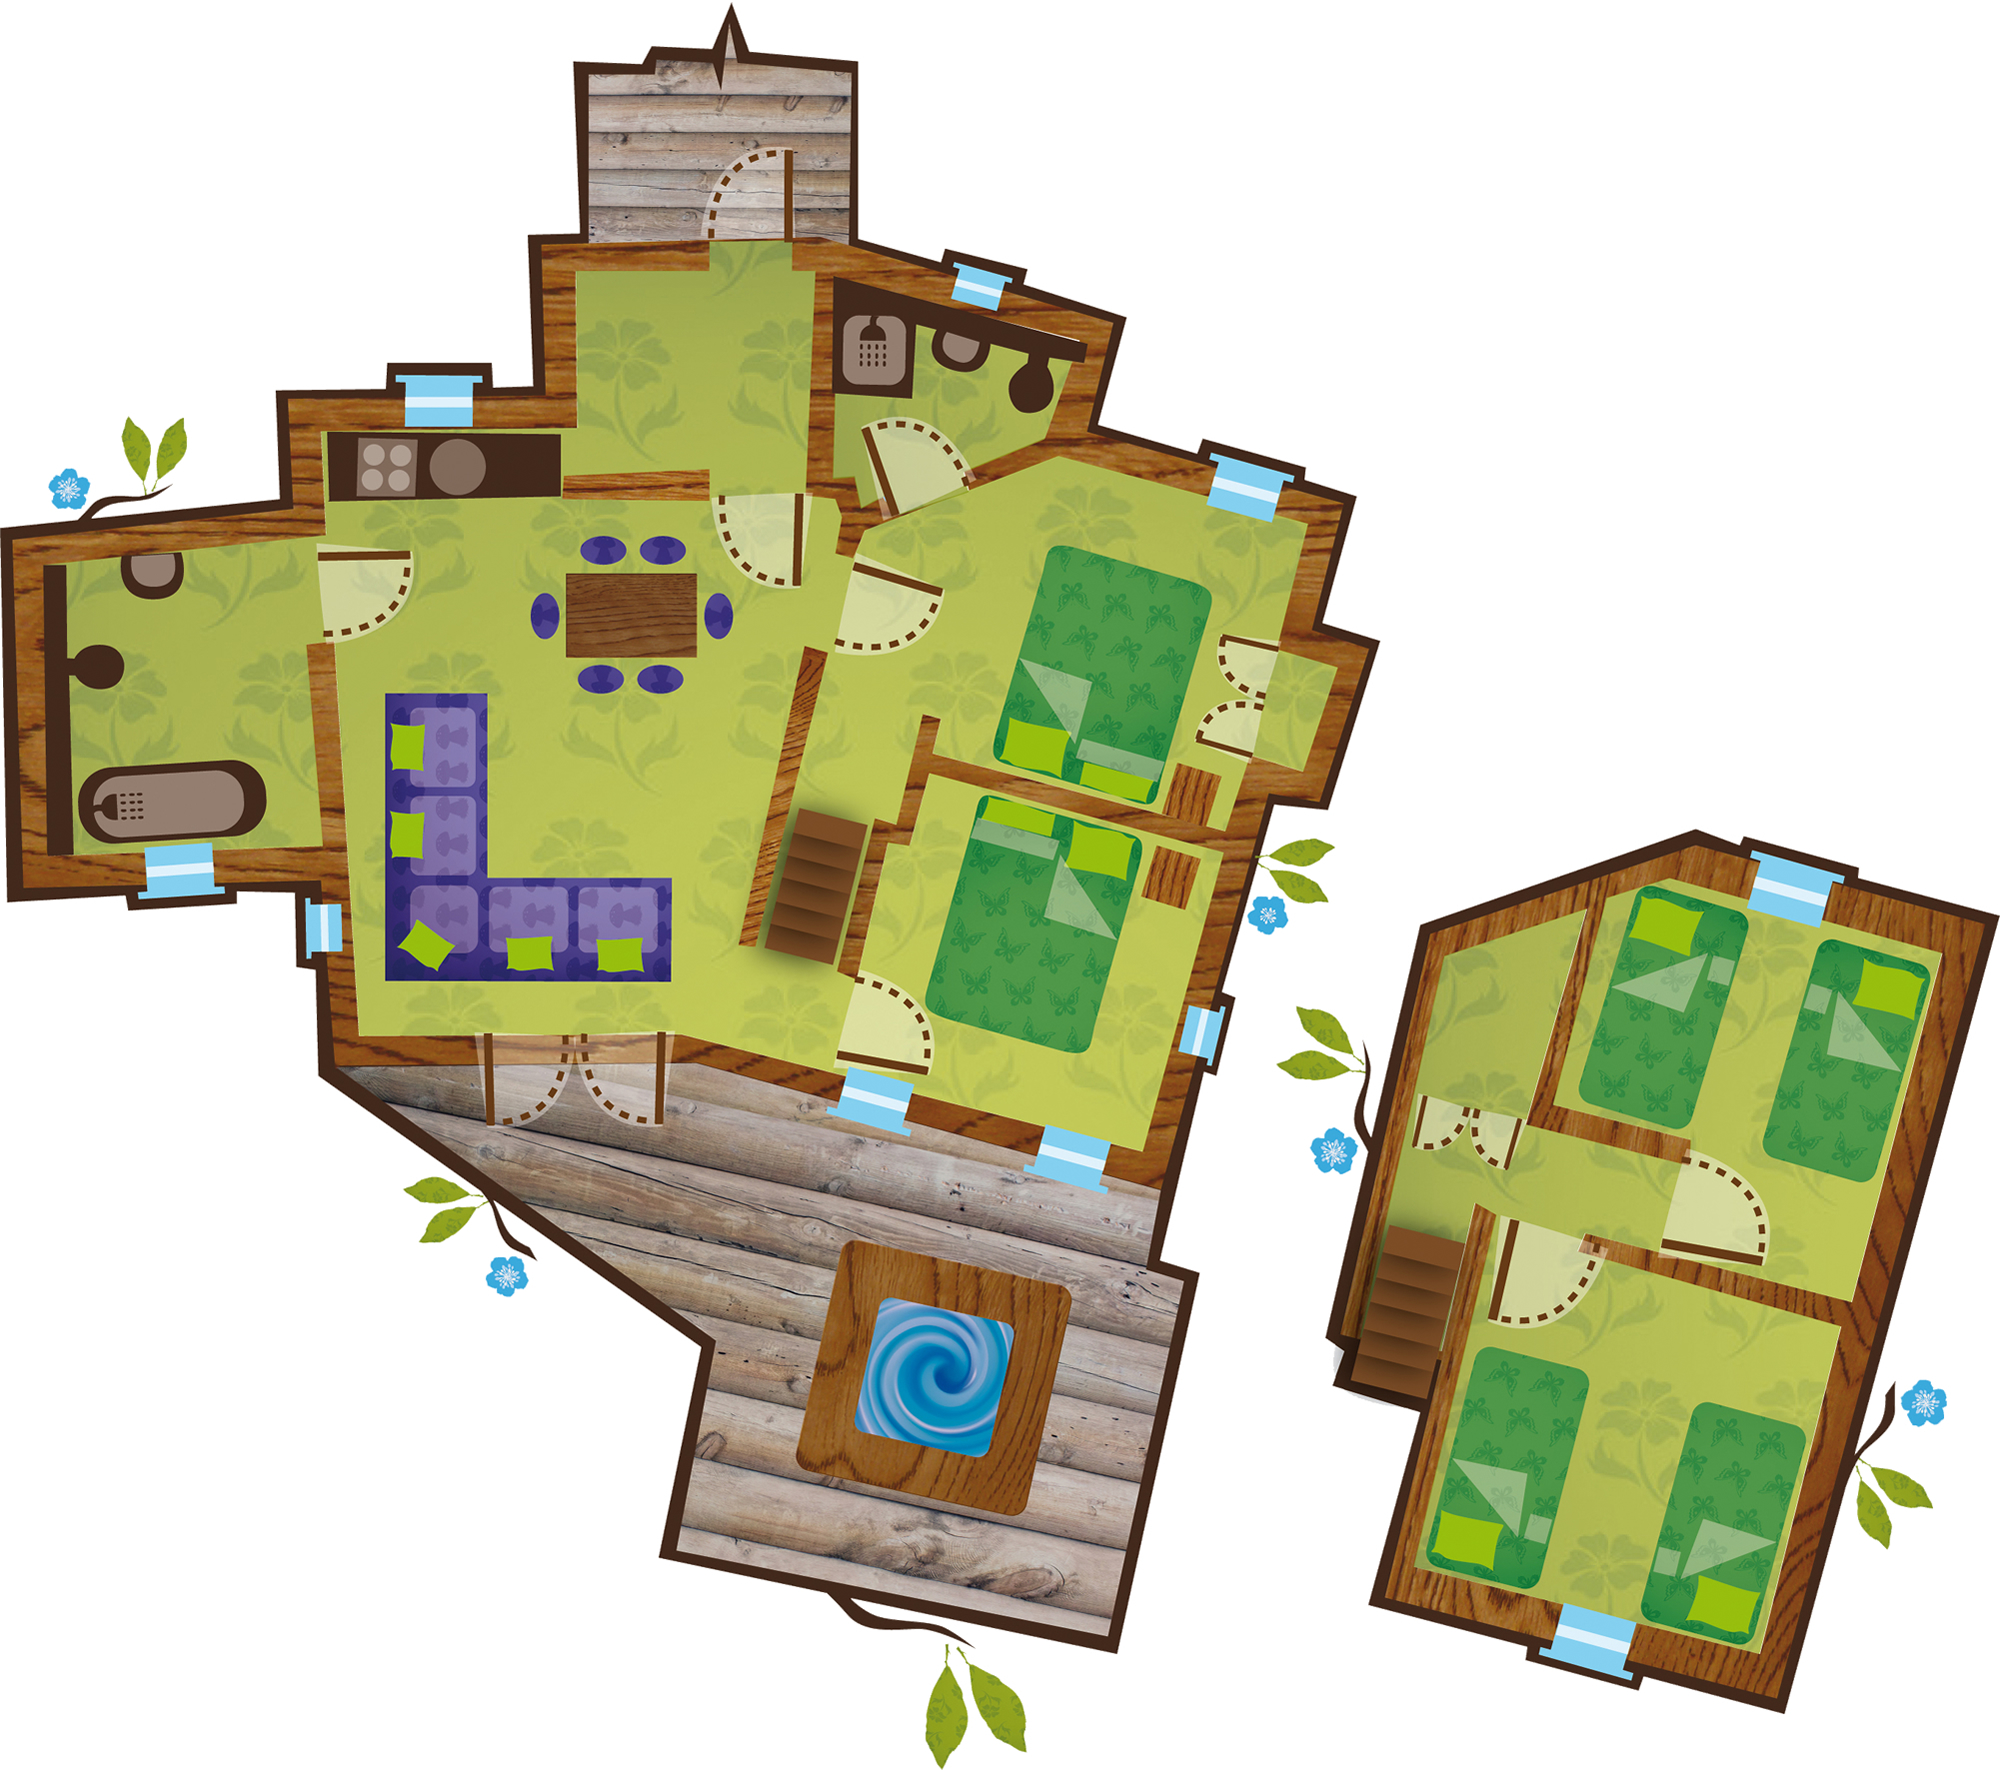 Luxury treehouses towerstimes for Floor planes